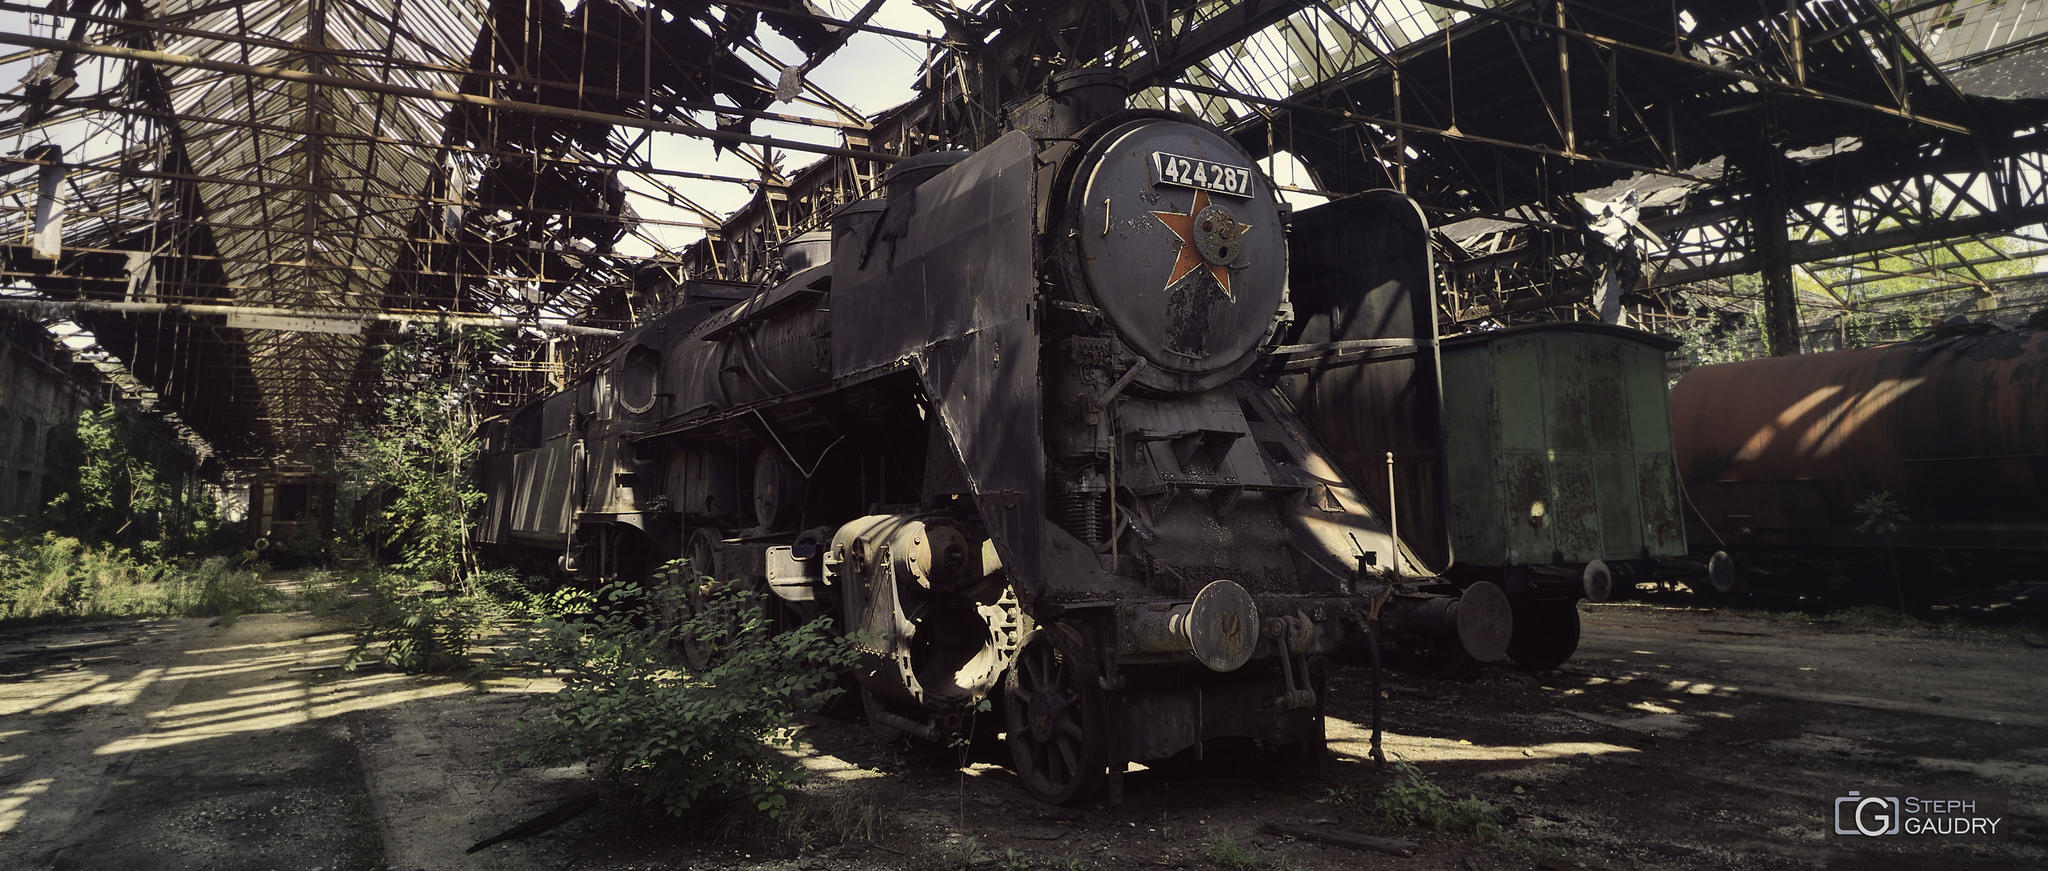 MÁV 424-287 (Abandoned Red star train) [Click to start slideshow]